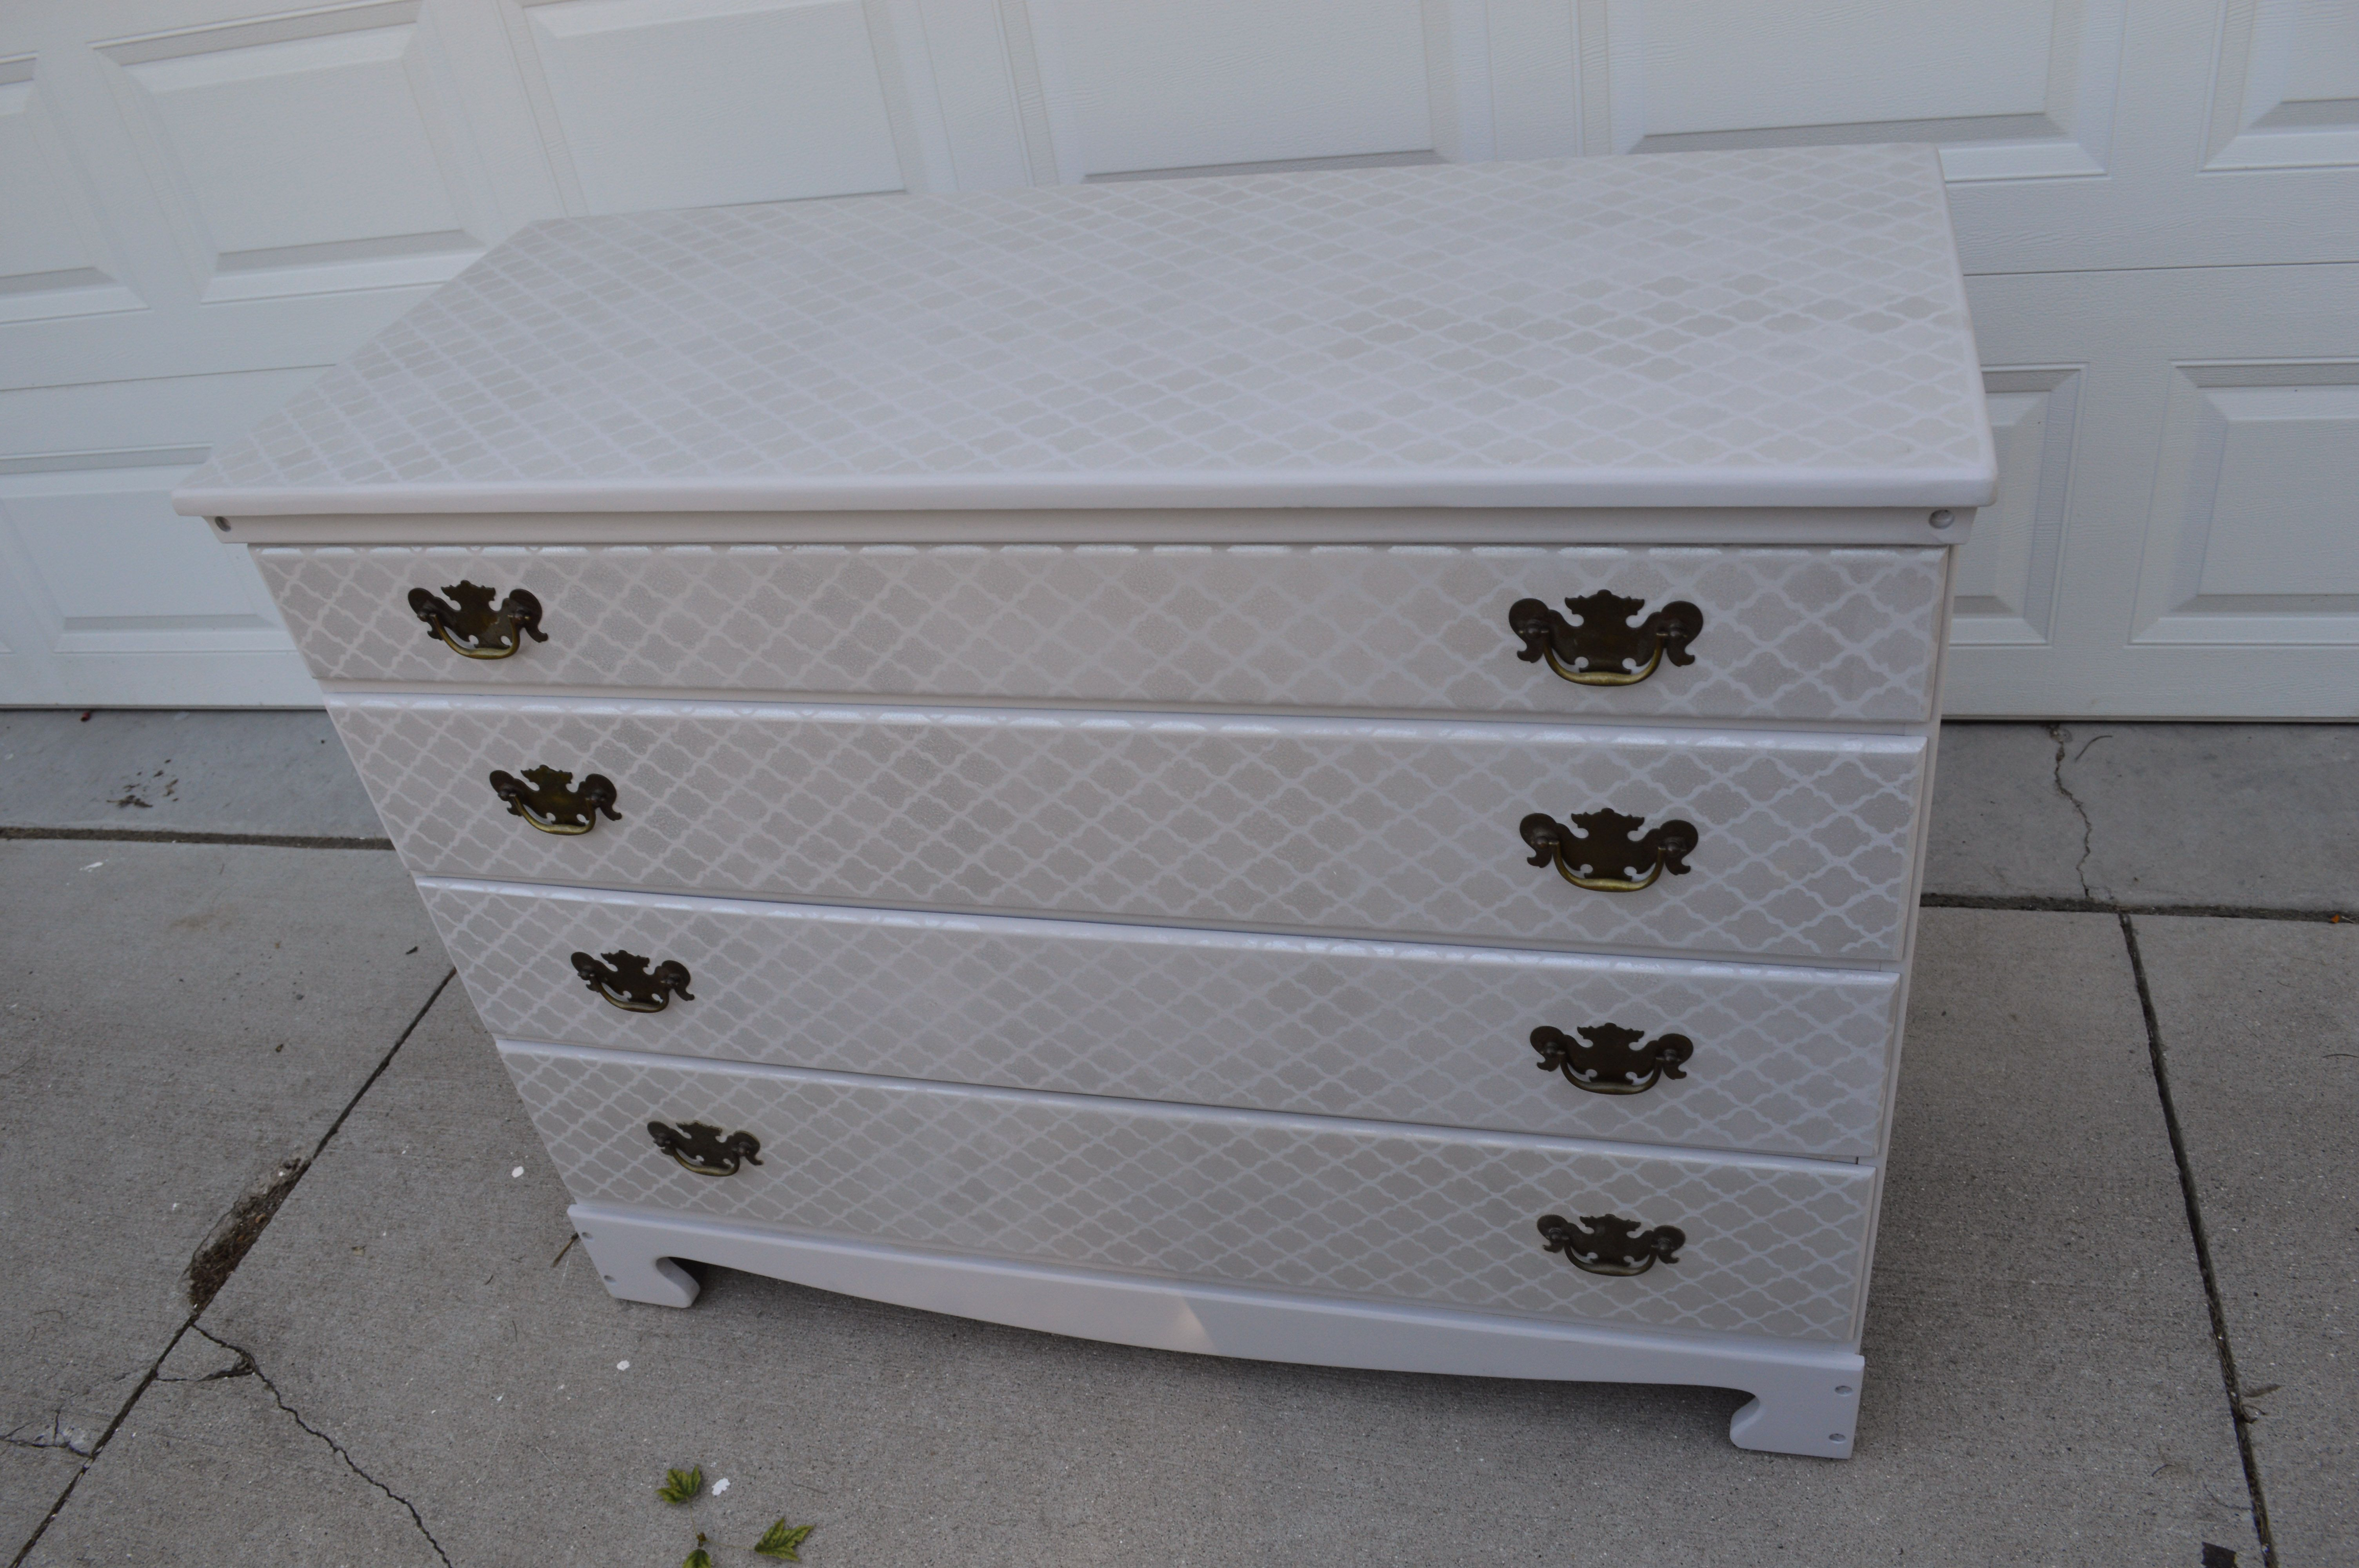 Diy stenciled painted changing table tutorial i turned this beat